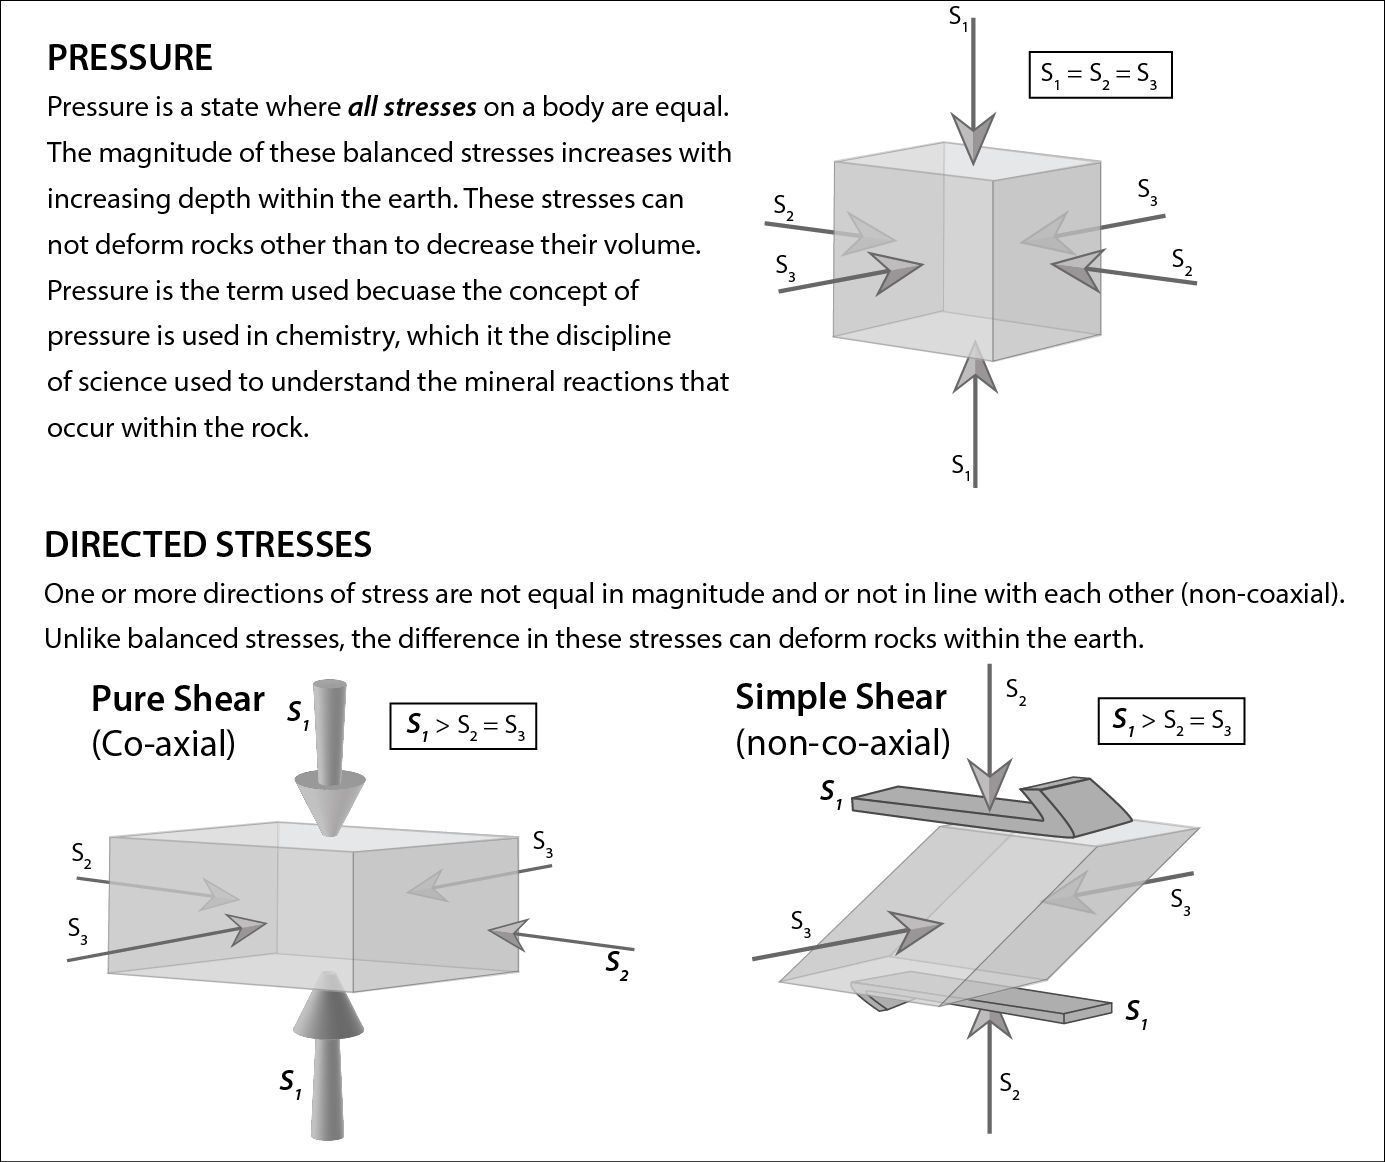 Pressure is a state where all stresses on a body are equal. The magnitude of these balanced stresses increases with increasing depth within the earth. These stresses can not deform rocks other than to decrease their volume. Pressure is the term used becuase the concept of pressure is used in chemistry, which it the discipline of science used to understand the mineral reactions that occur within the rock. DIRECTED STRESSES s, s, One or more directions of stress are not equal in magnitude and or not in line with each other (non-coaxial). Unlike balanced stresses, the difference in these stresses can deform rocks within the earth.